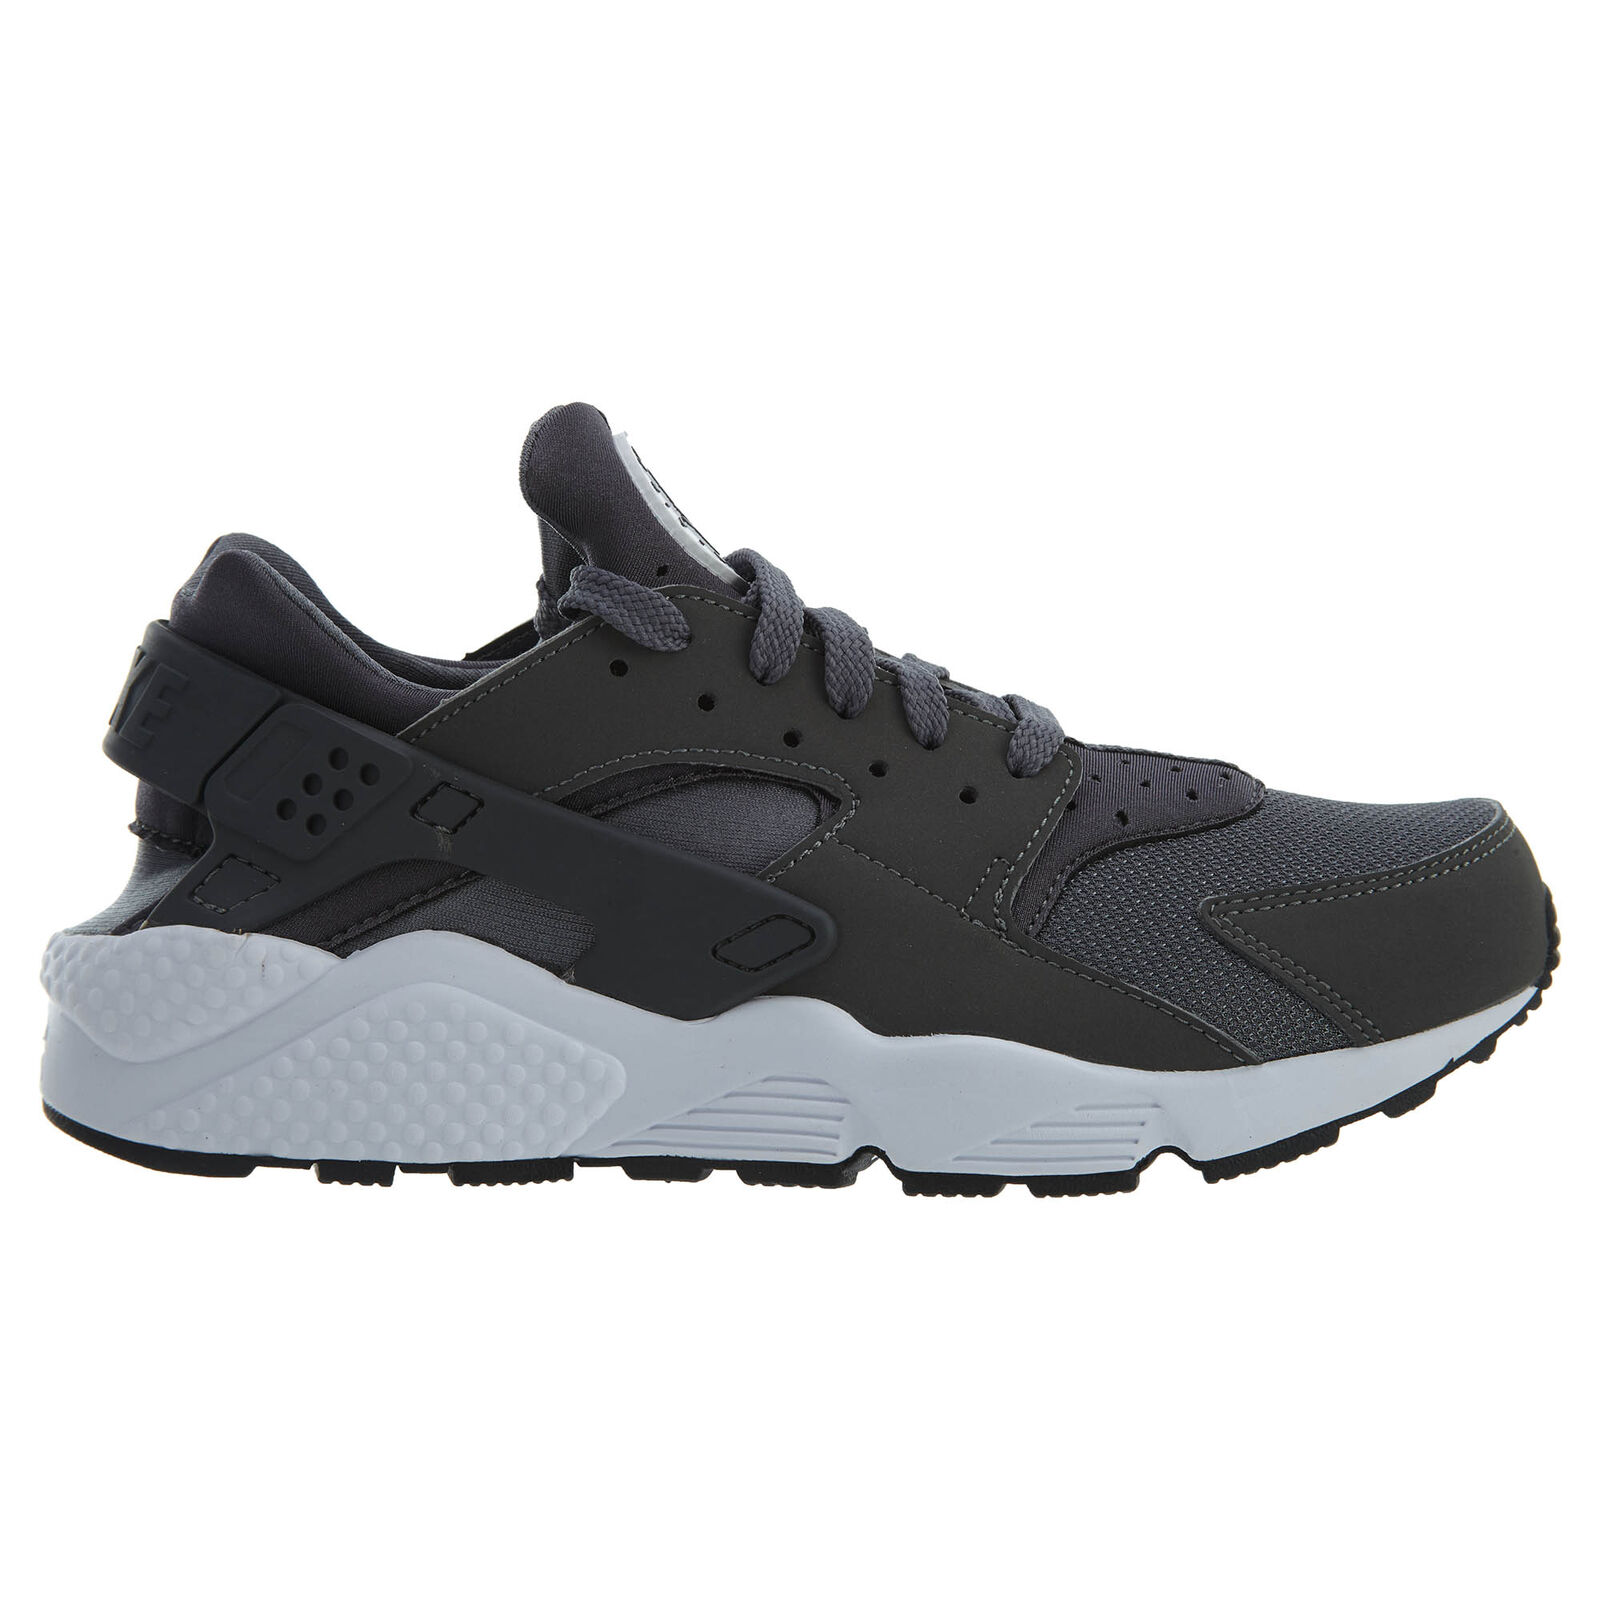 differently 32de7 65f41 Nike Air Huarache Mens 318429-037 Dark Grey Athletic Running Shoes Shoes  Shoes Size 10.5